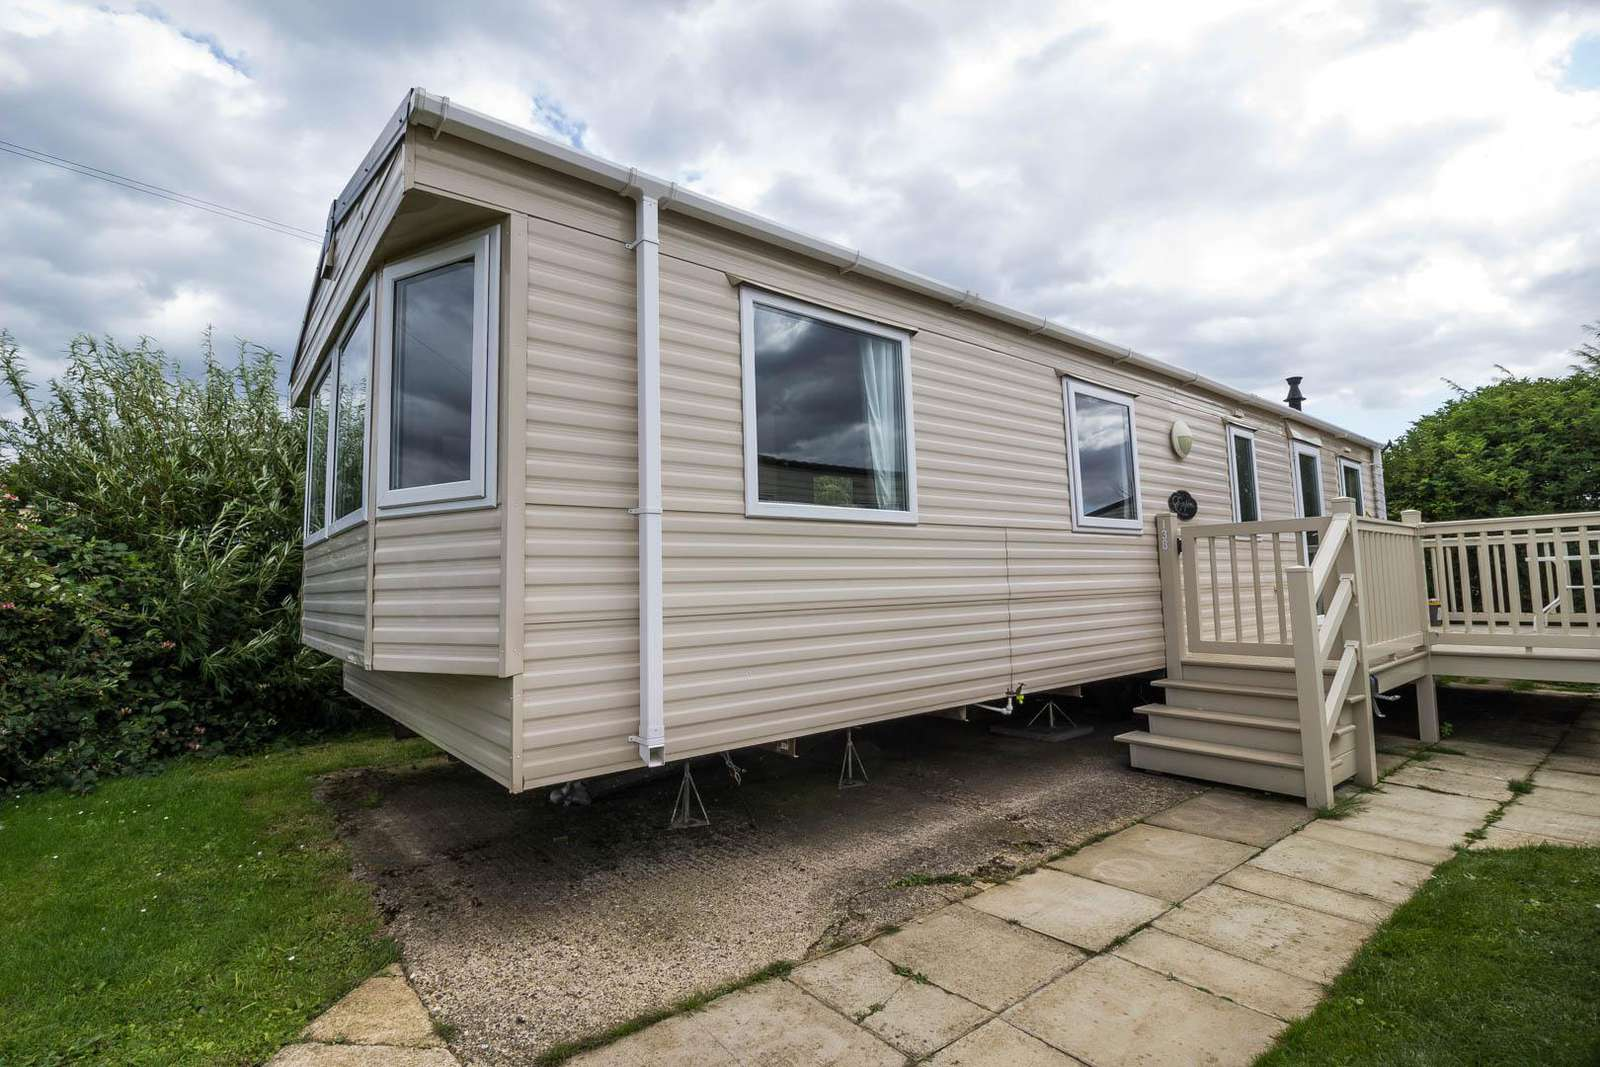 41138SF – South Field area, 2 bed, 6 berth caravan with decking, D/G & C/H. Diamond rated. - property